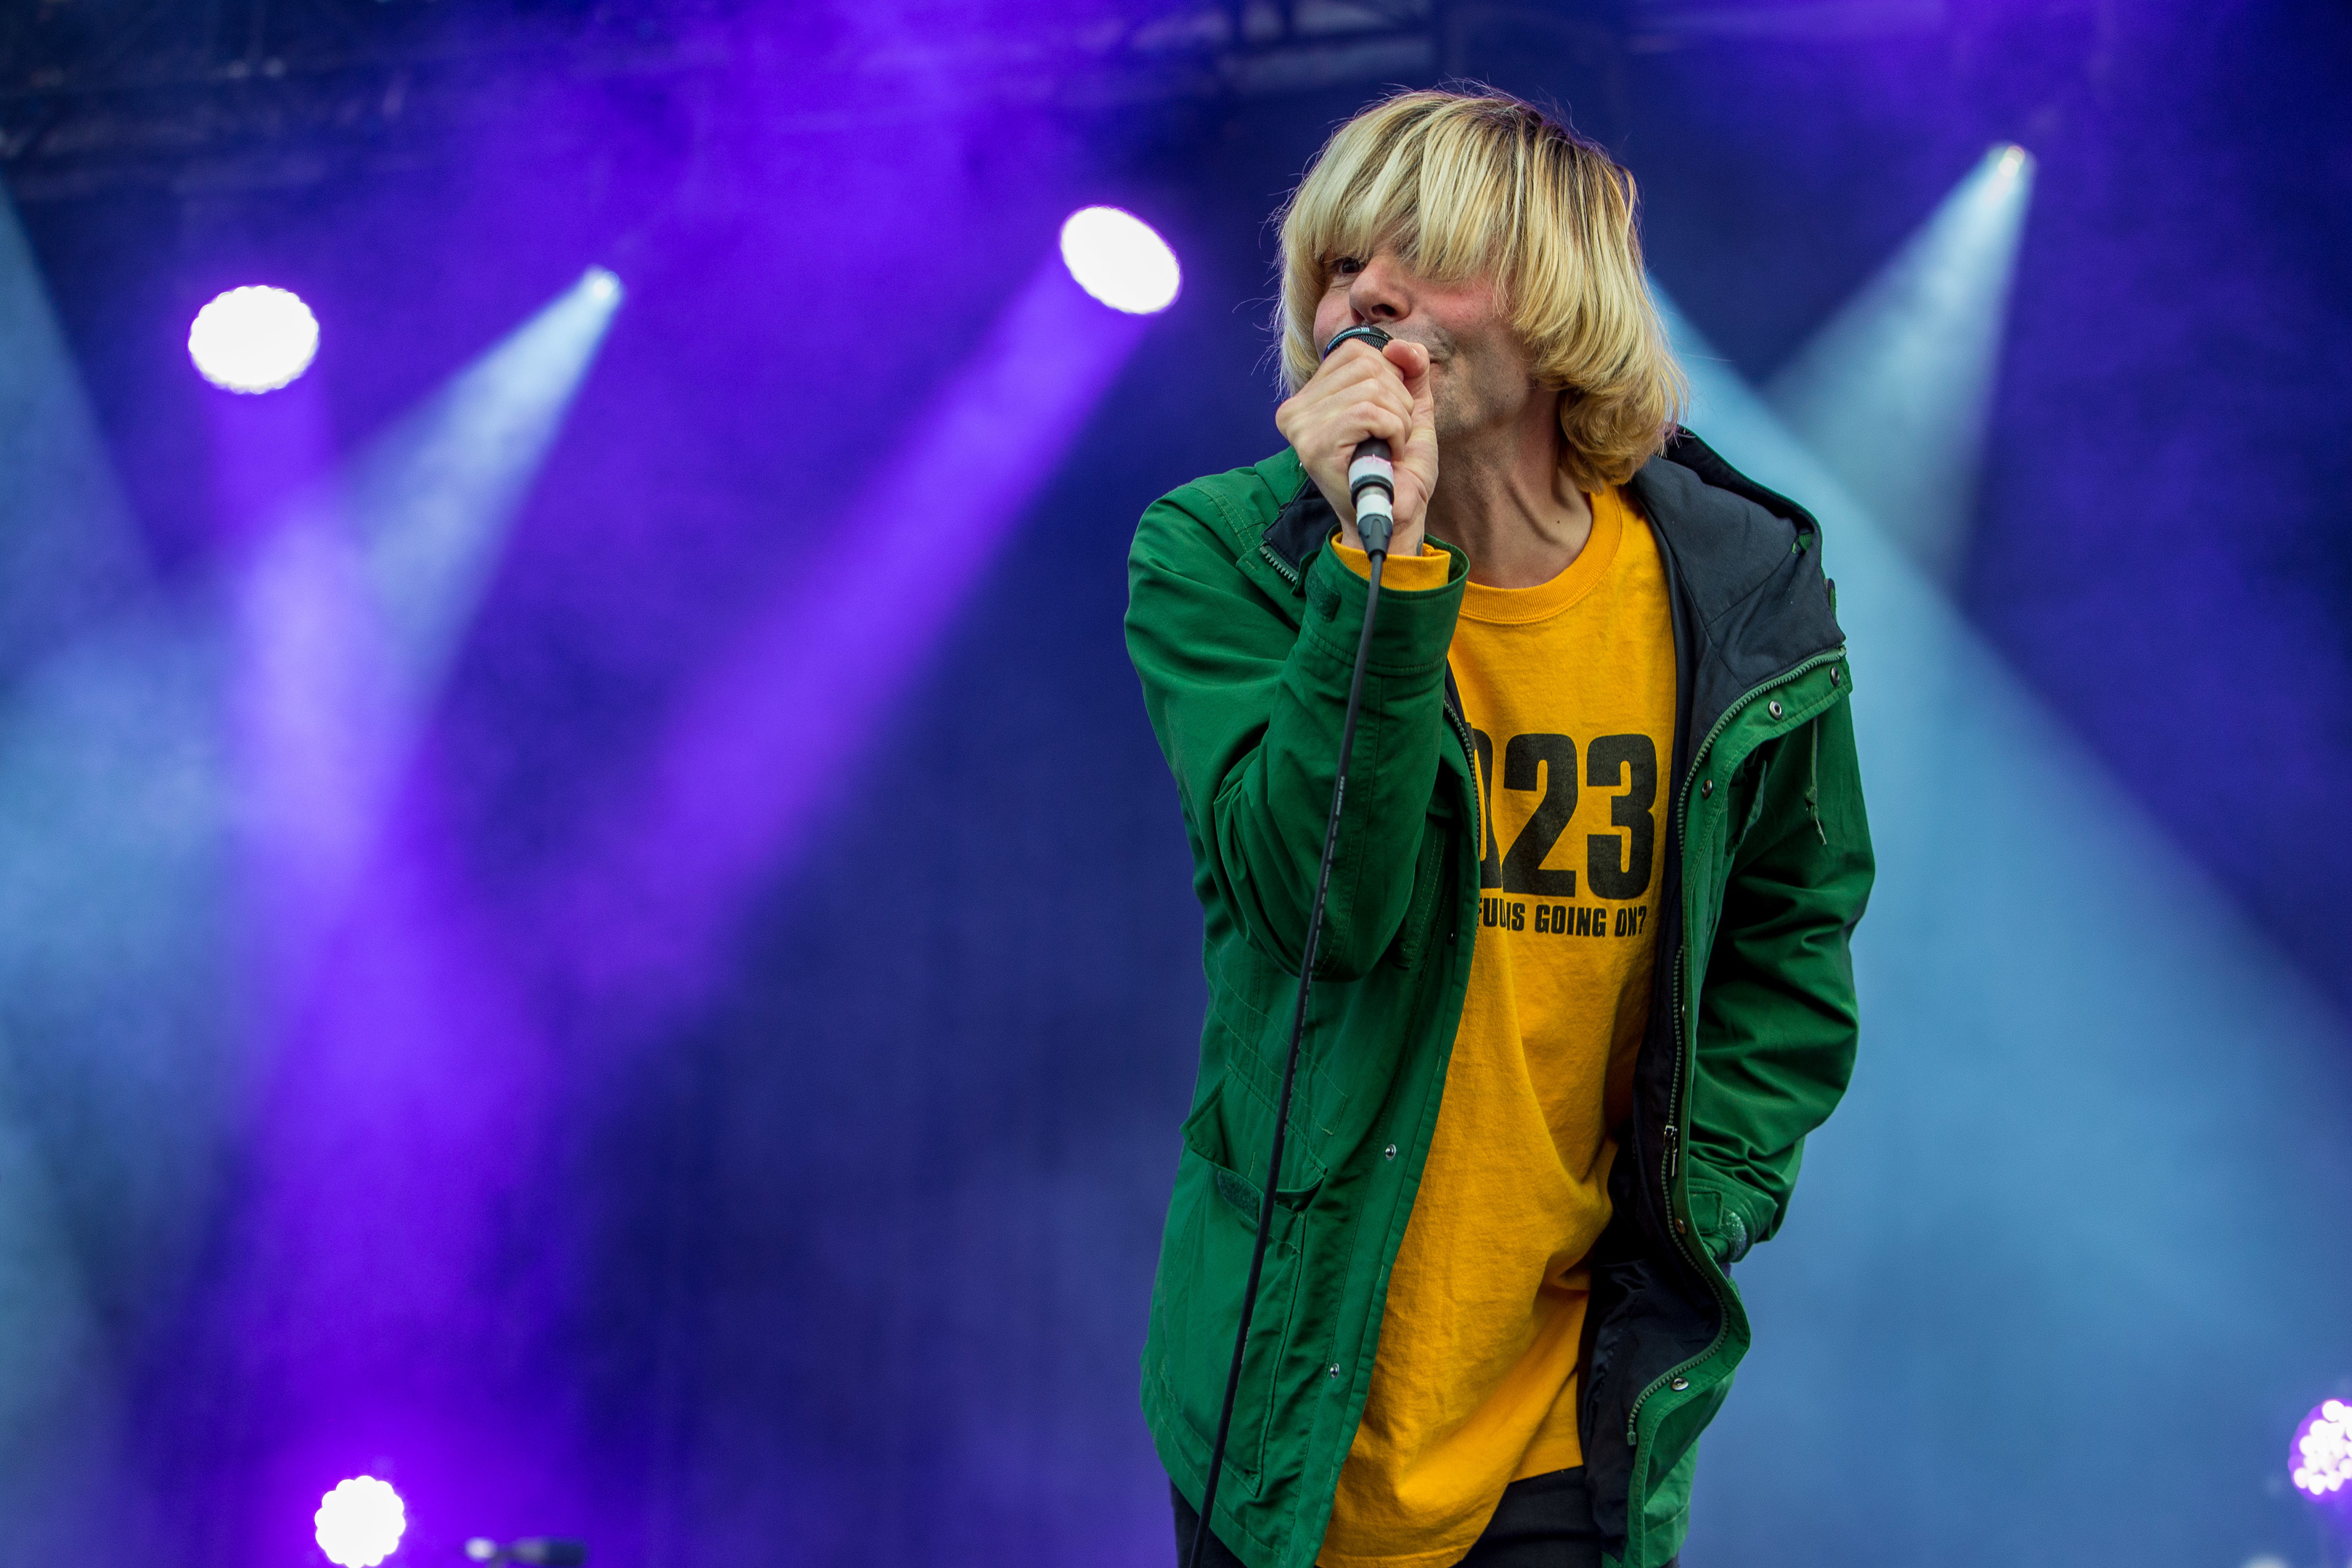 Tim Burgess of The Charlatans performs at Carnival 56